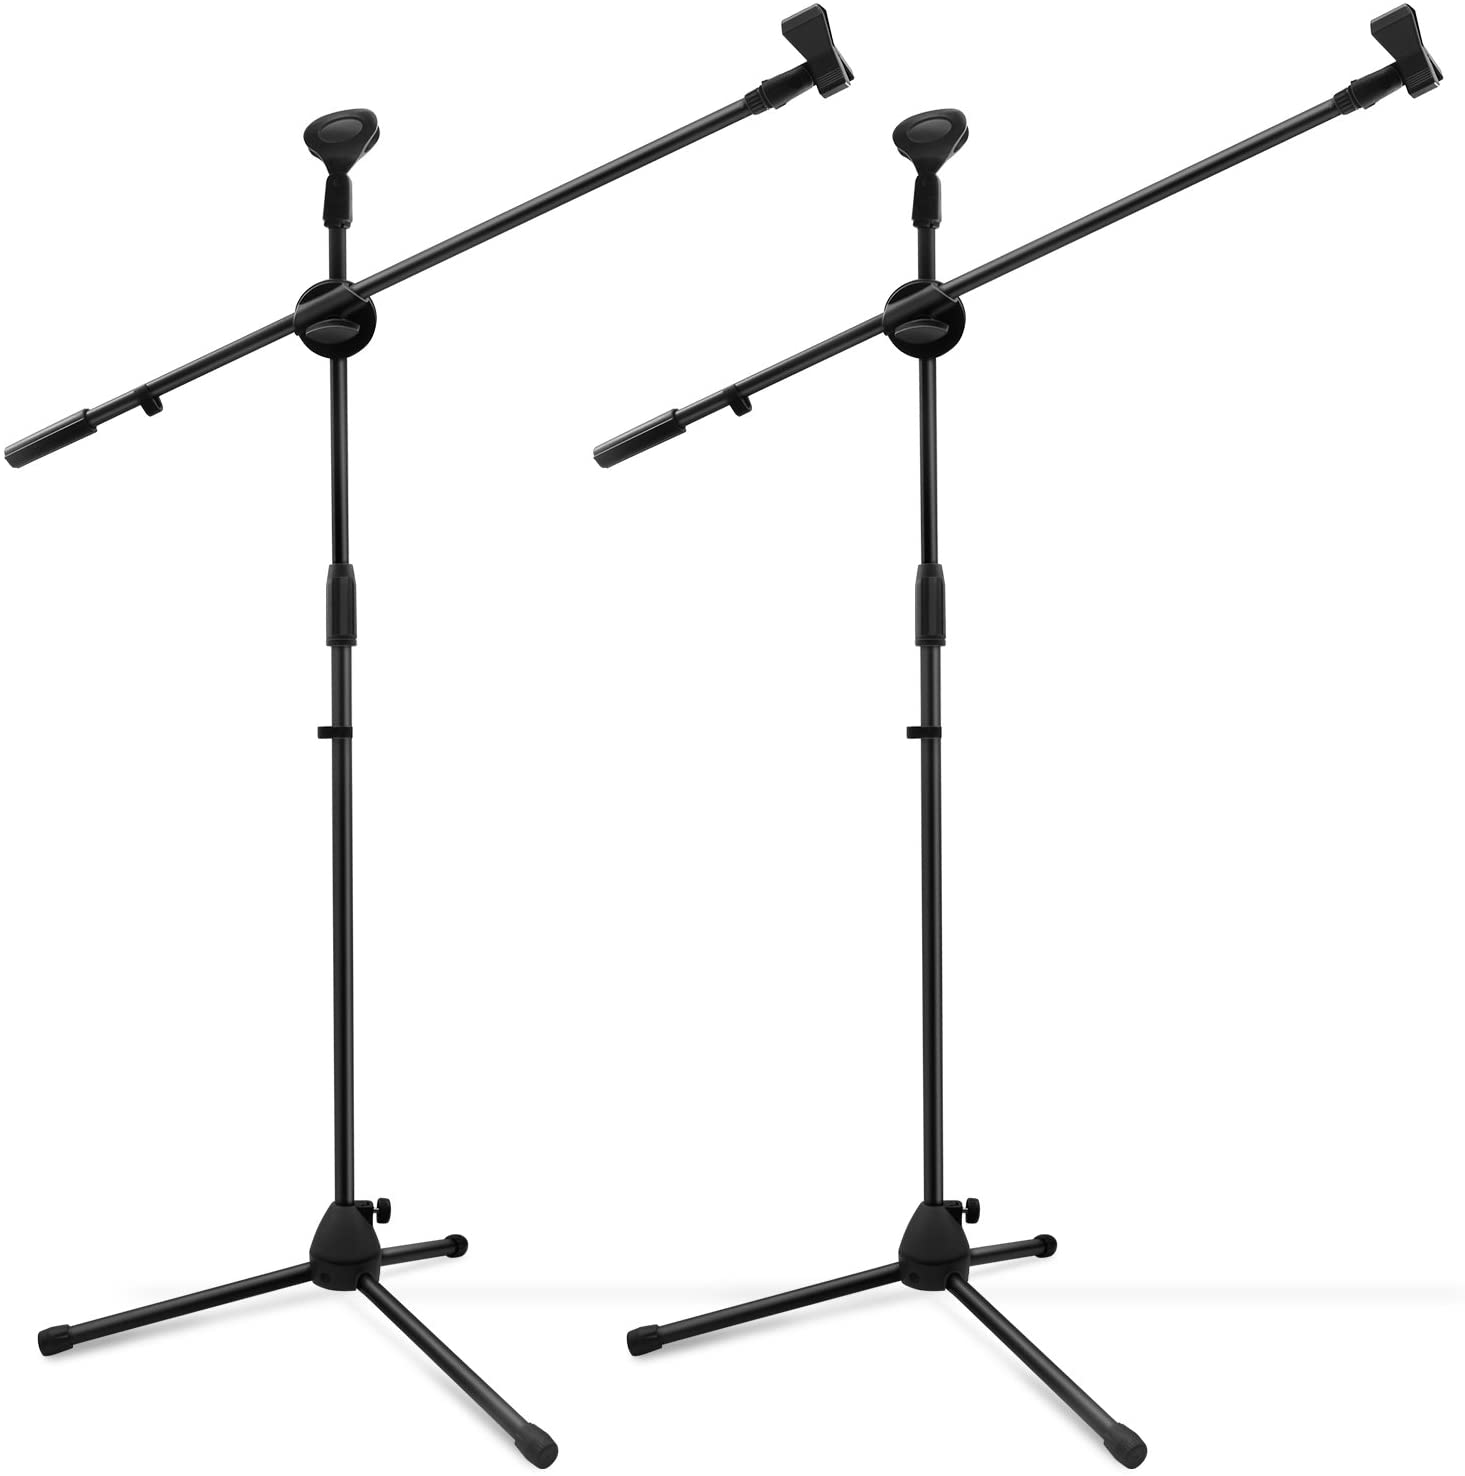 Microphone Stand 2 pack, Ohuhu Tripod Boom Mic Stands, Dual Mic Clip, Collapsible, Black